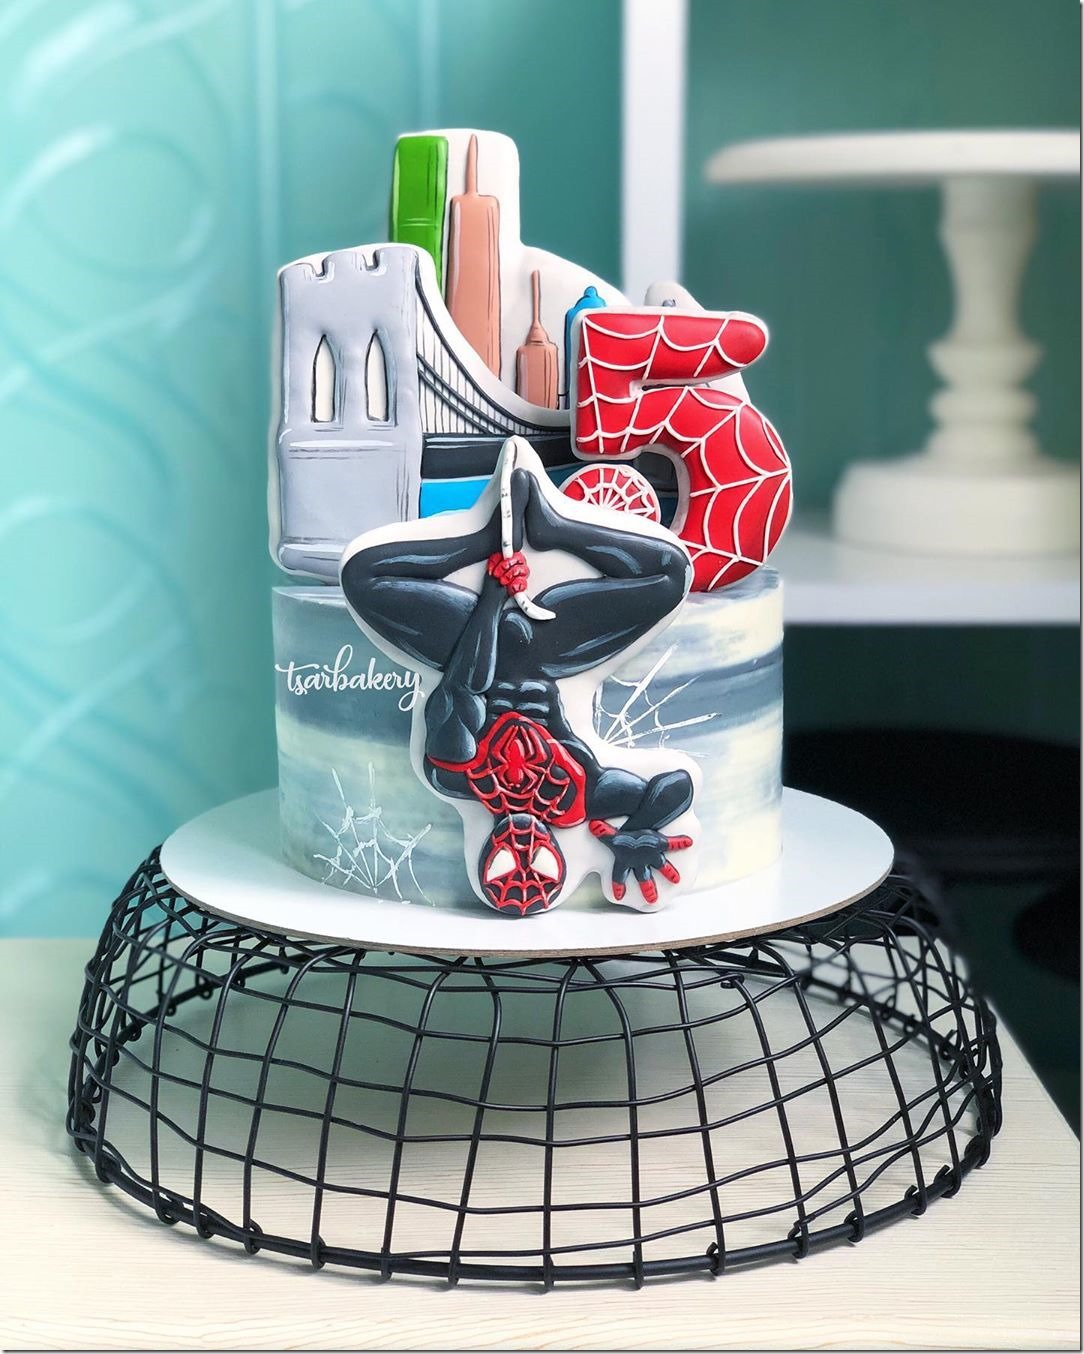 Miles Morales Spider-Man 5th Birthday Cake